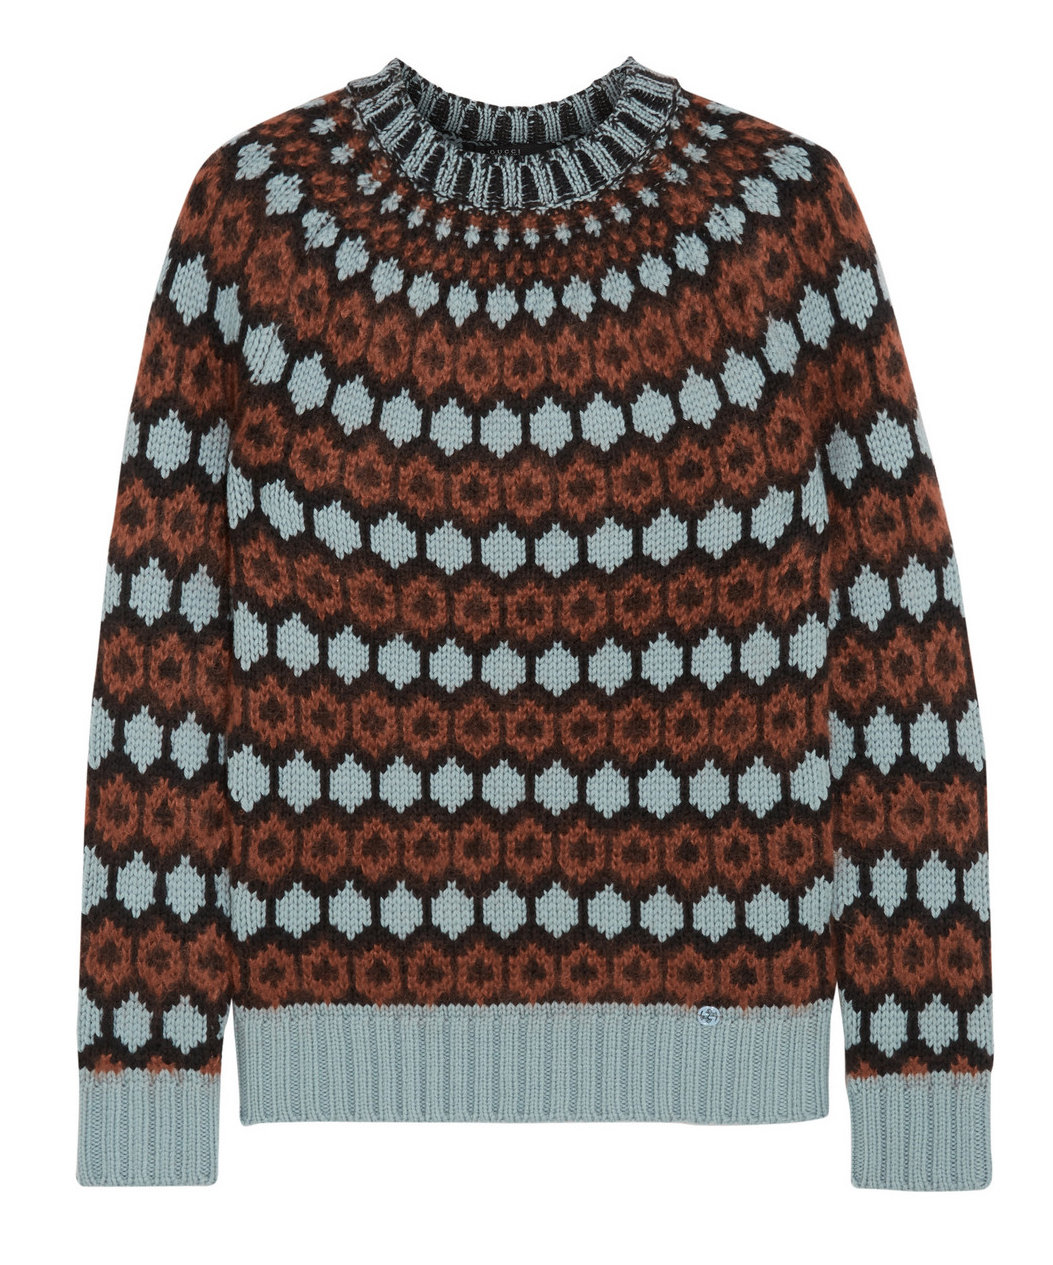 Ski Lodge Sweaters - Fair Isle Sweaters | InStyle.com